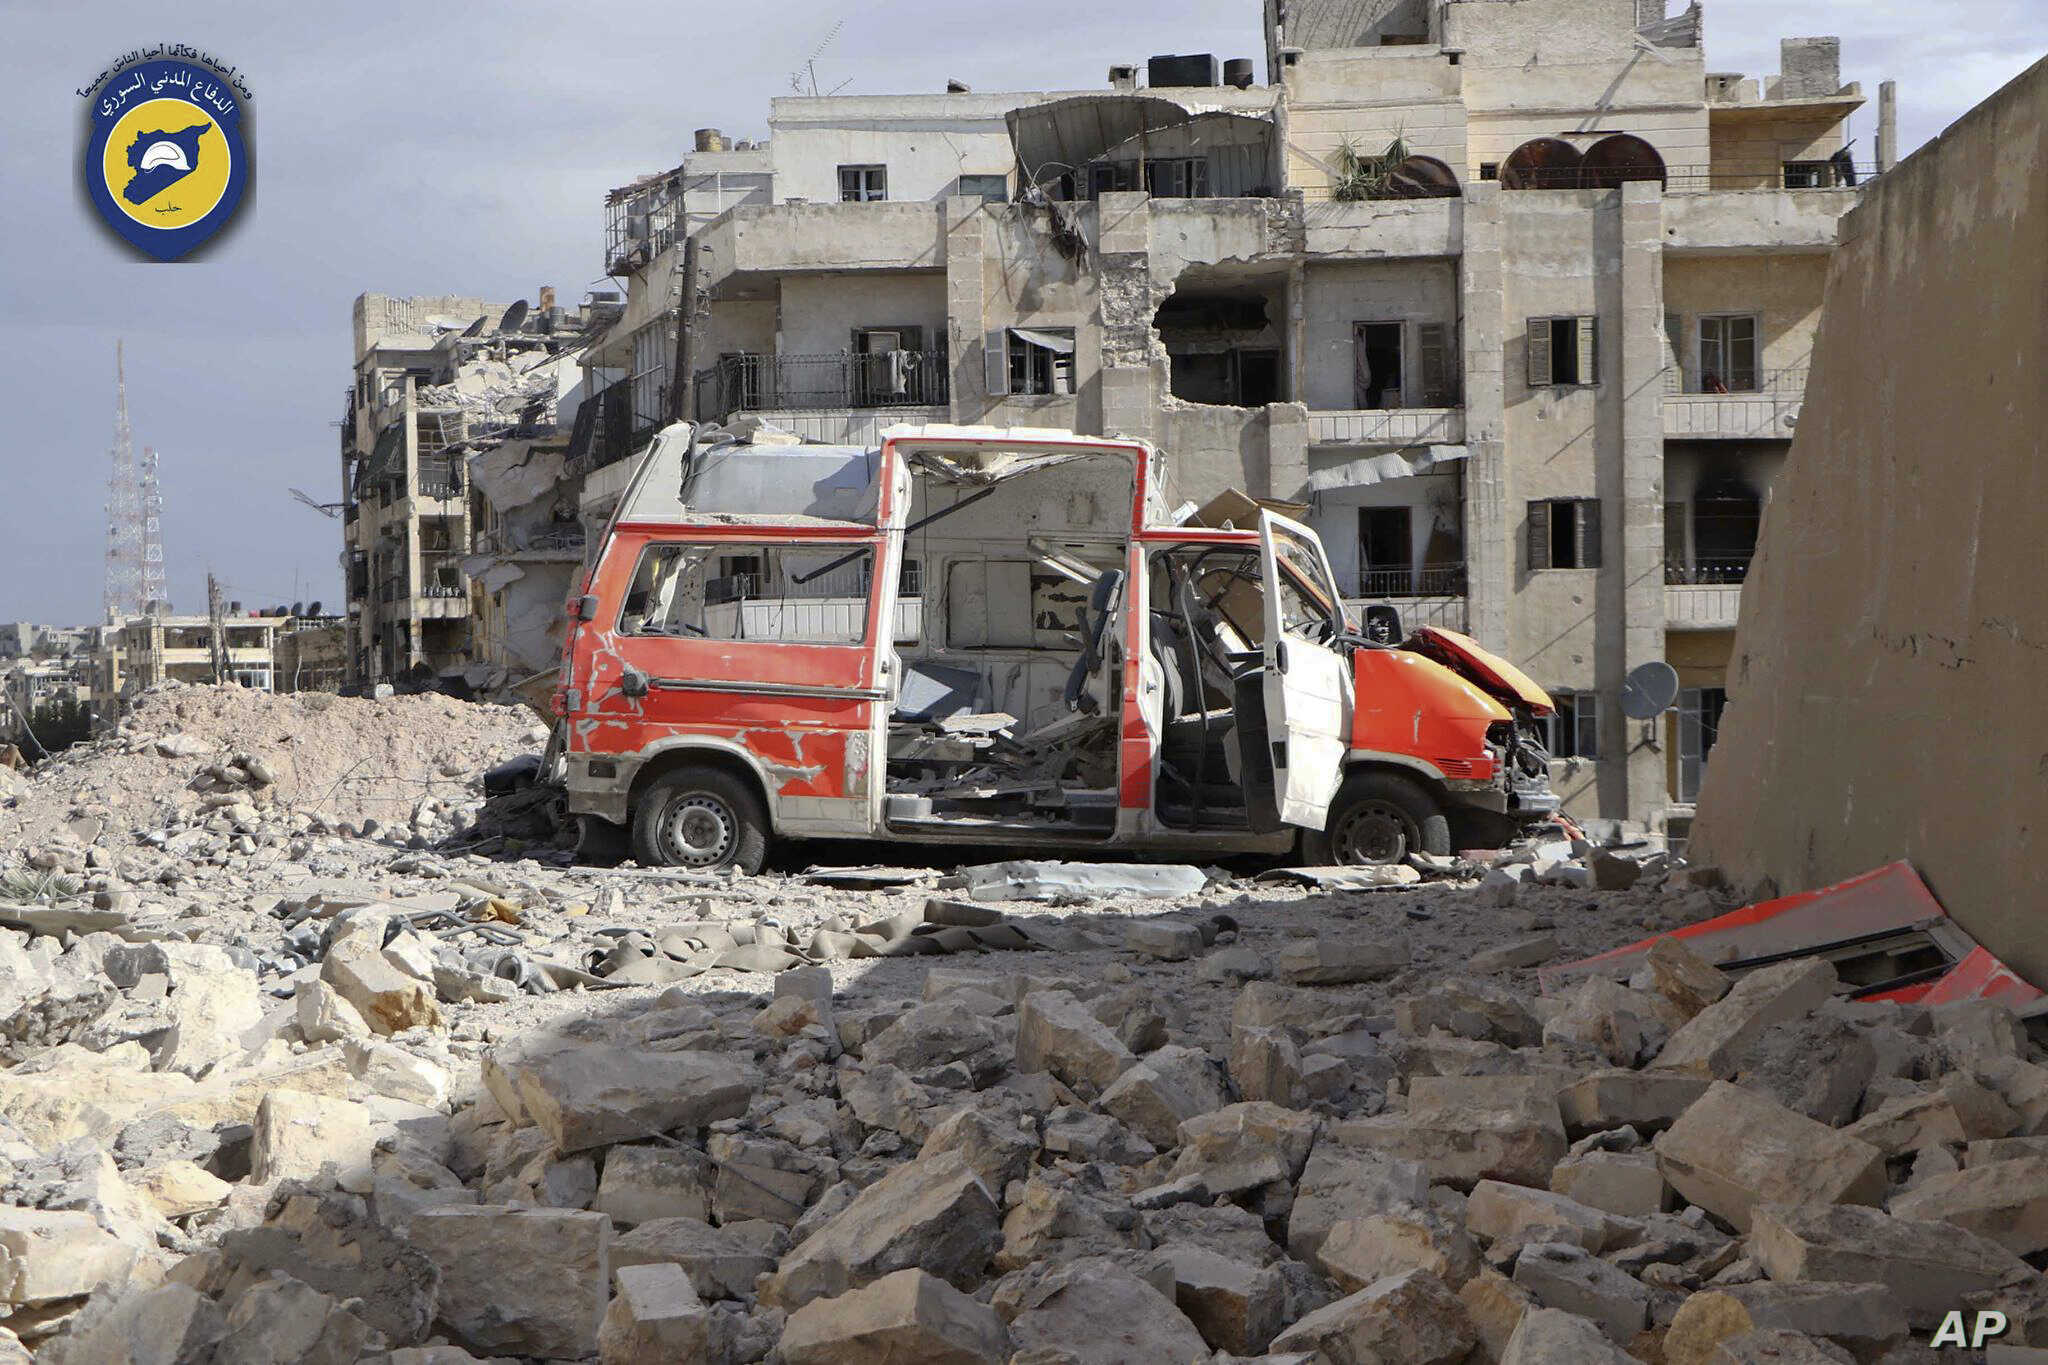 Study: Ambulances 'Repeatedly Targeted' in Syria Conflict